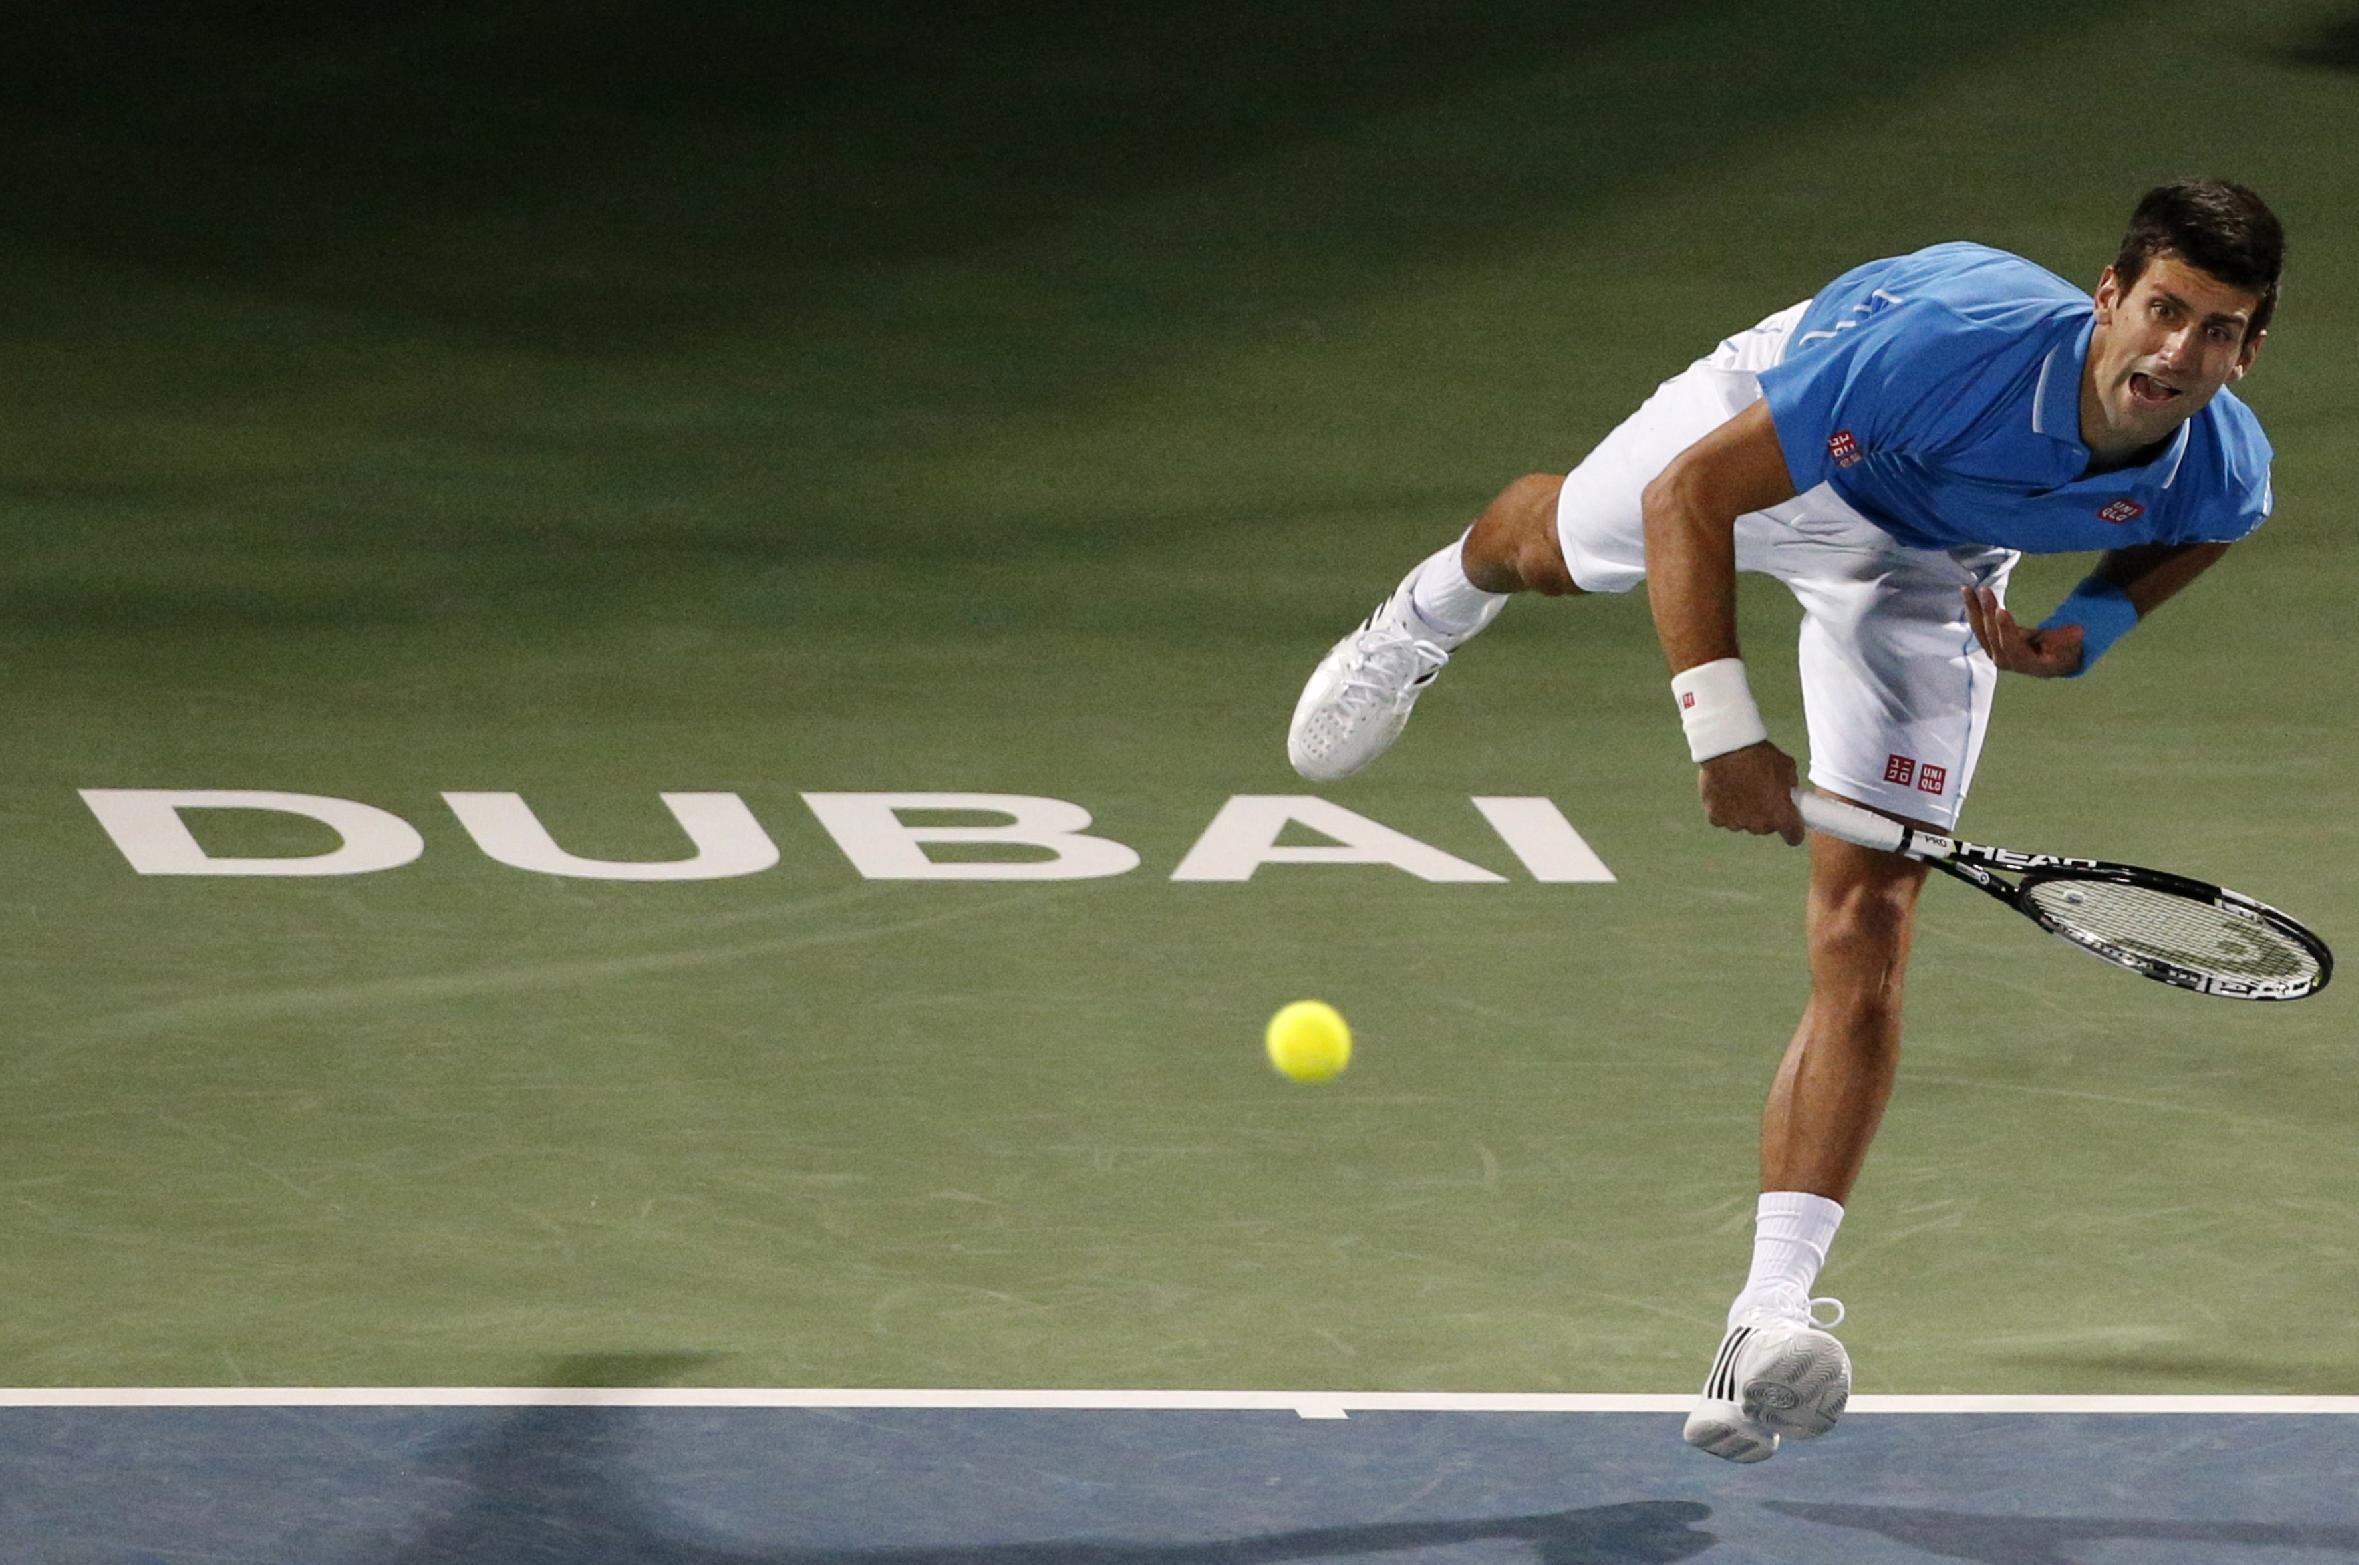 Djokovic earns Dubai showdown with Federer